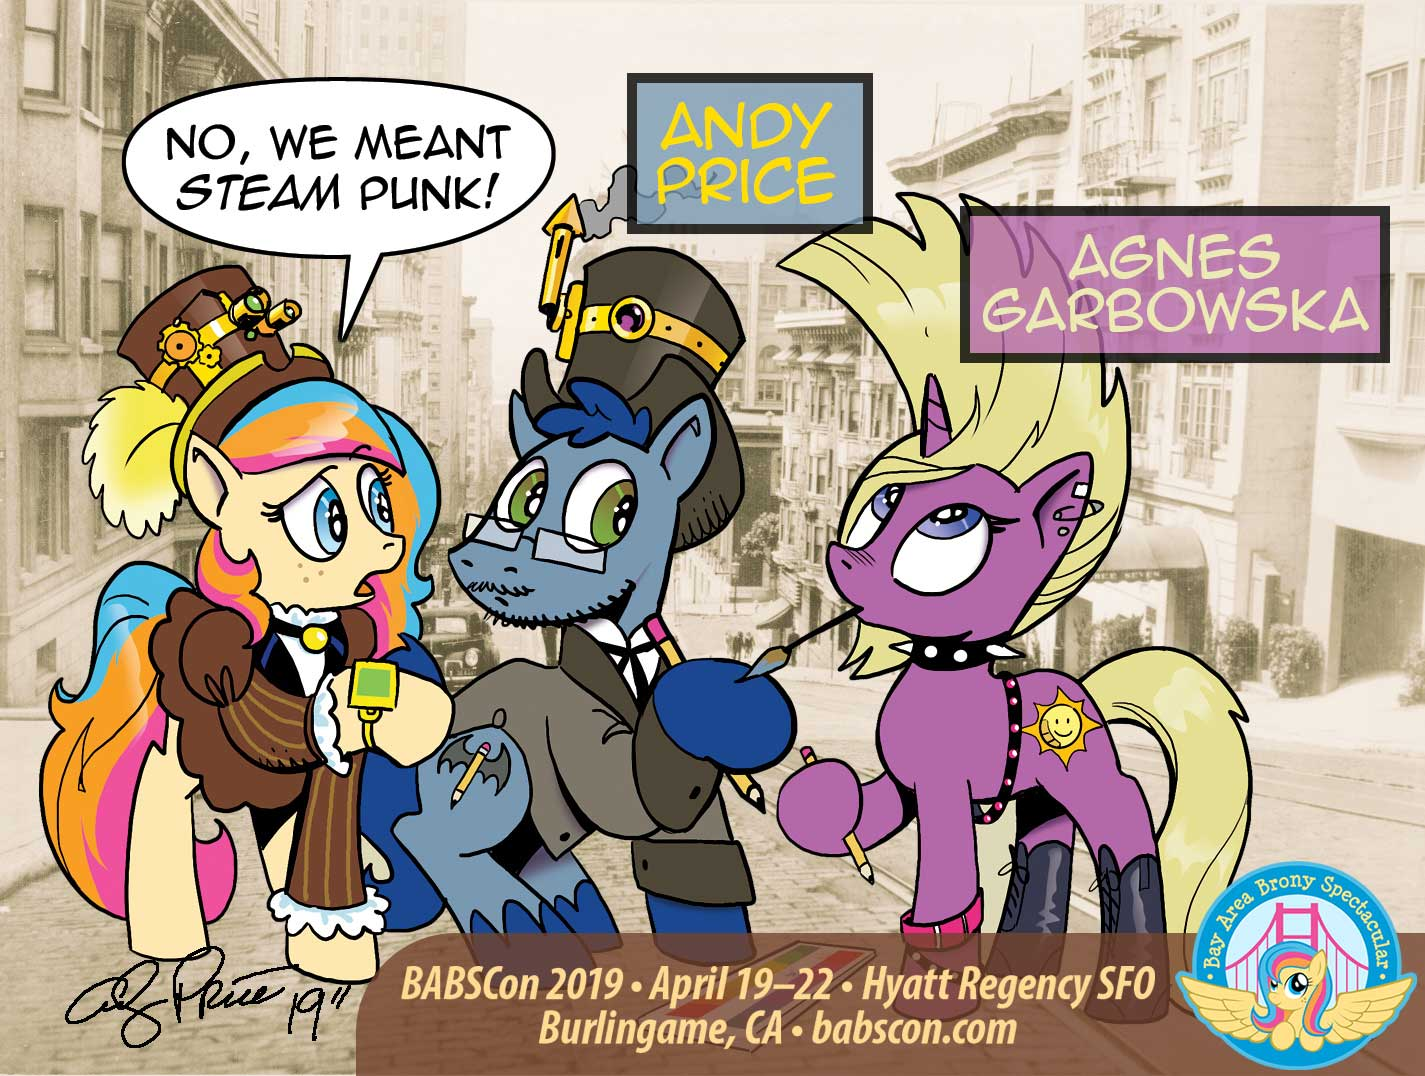 BABSCon Draws a Royal Pair: Andy Price & Agnes Garbowska